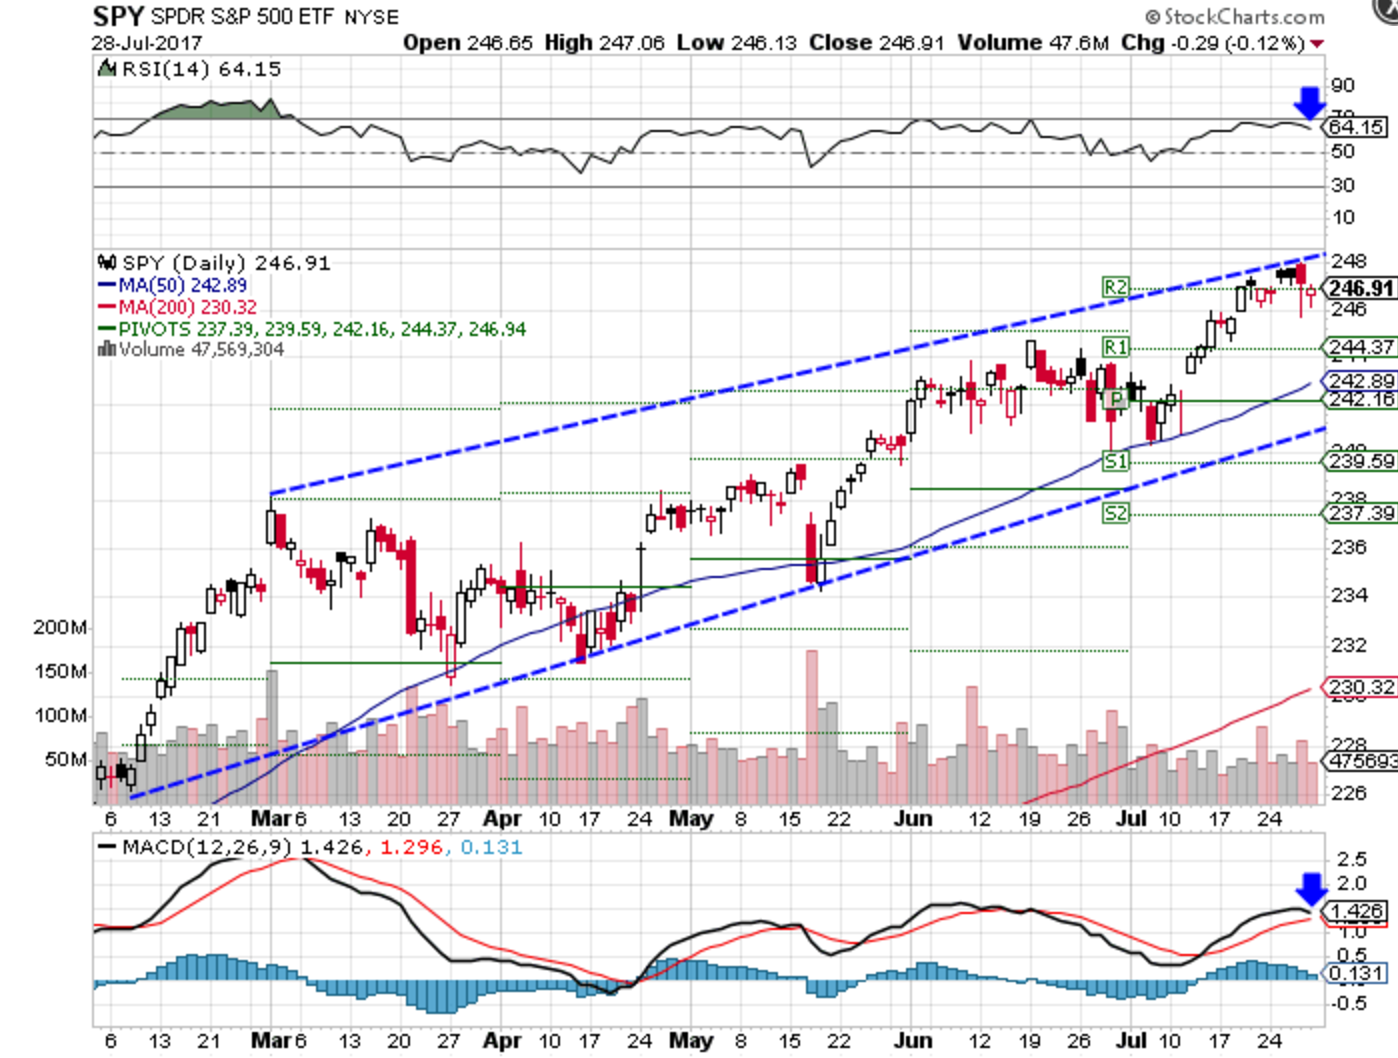 Technical chart showing performance of the S&P 500 SPDR ETF (SPY)